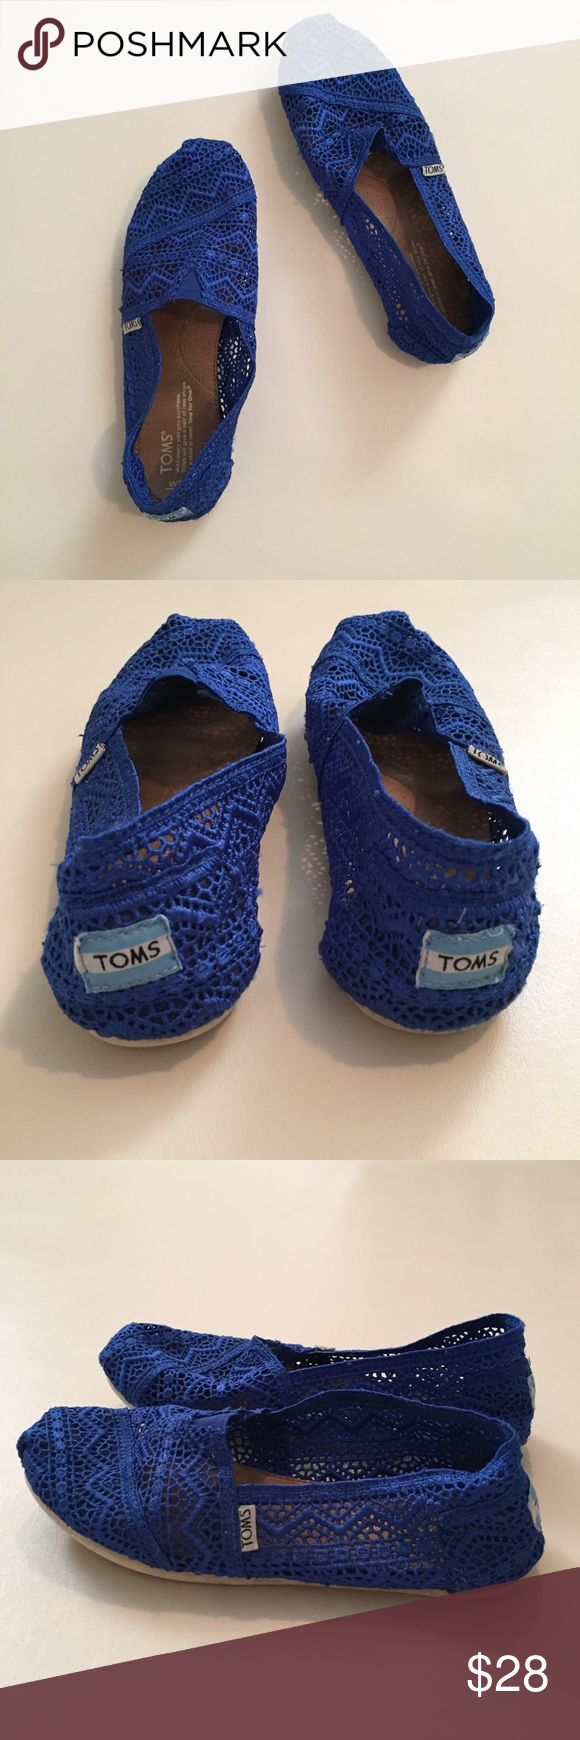 """TOMS Crochet slip ons TOMS brand crochet slip ons in royal blue. Some wear on back labels and sole. Size 8. Sole measures 10"""". TOMS Shoes Flats & Loafers"""